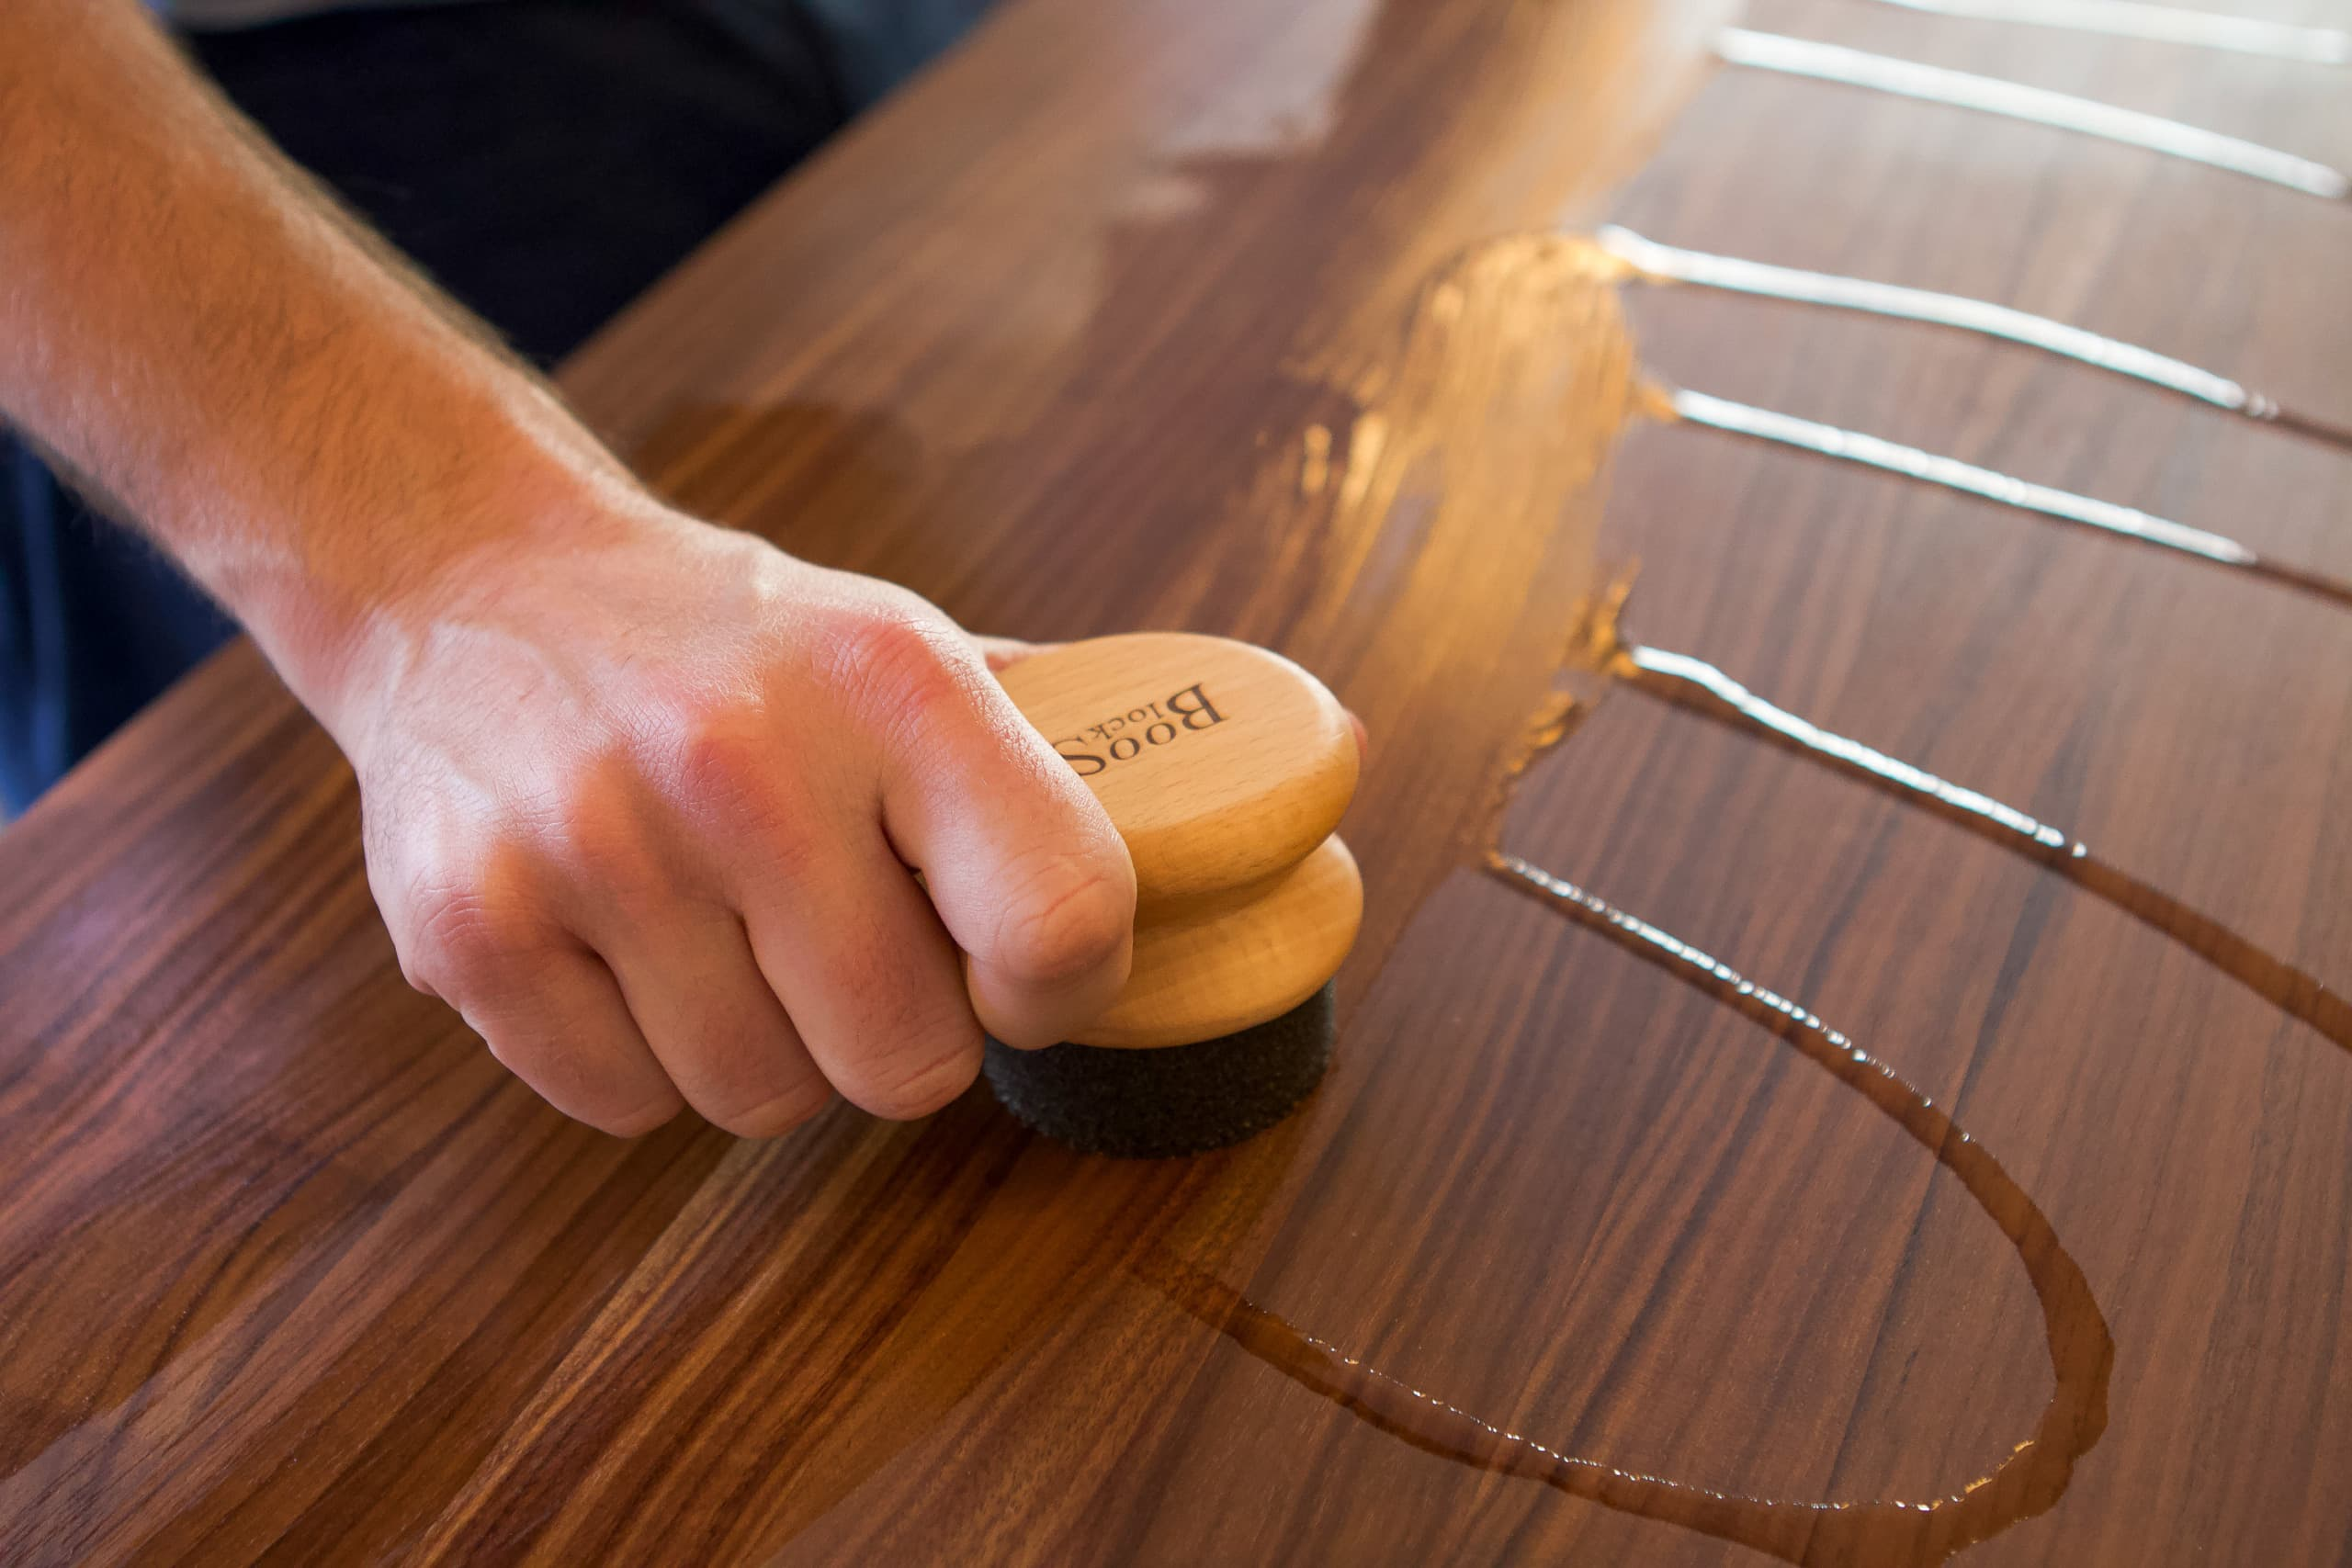 Make sure you oil your wood butcher block